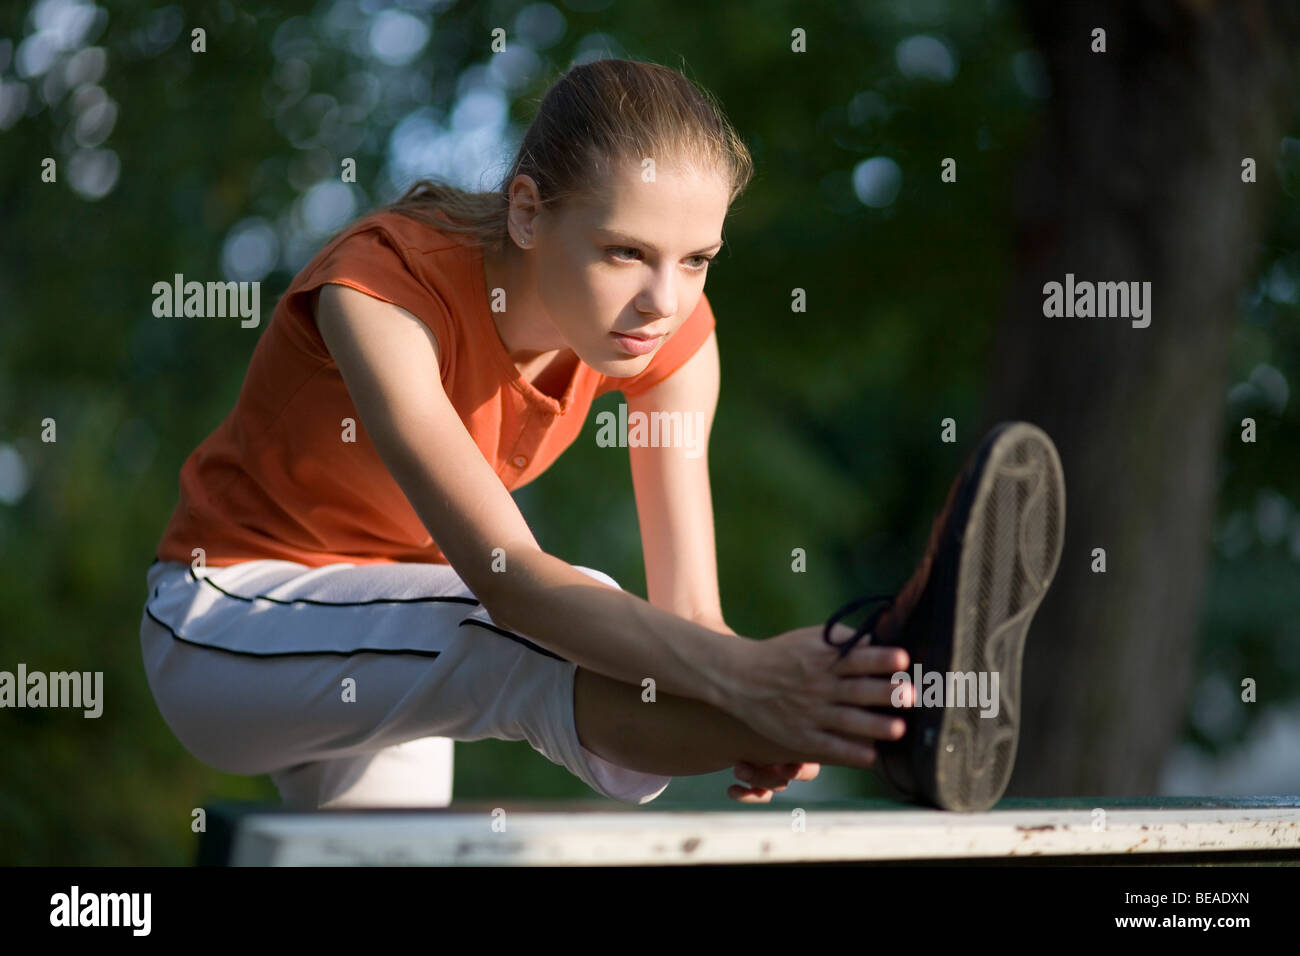 Young woman exercising, stretching in park. - Stock Image